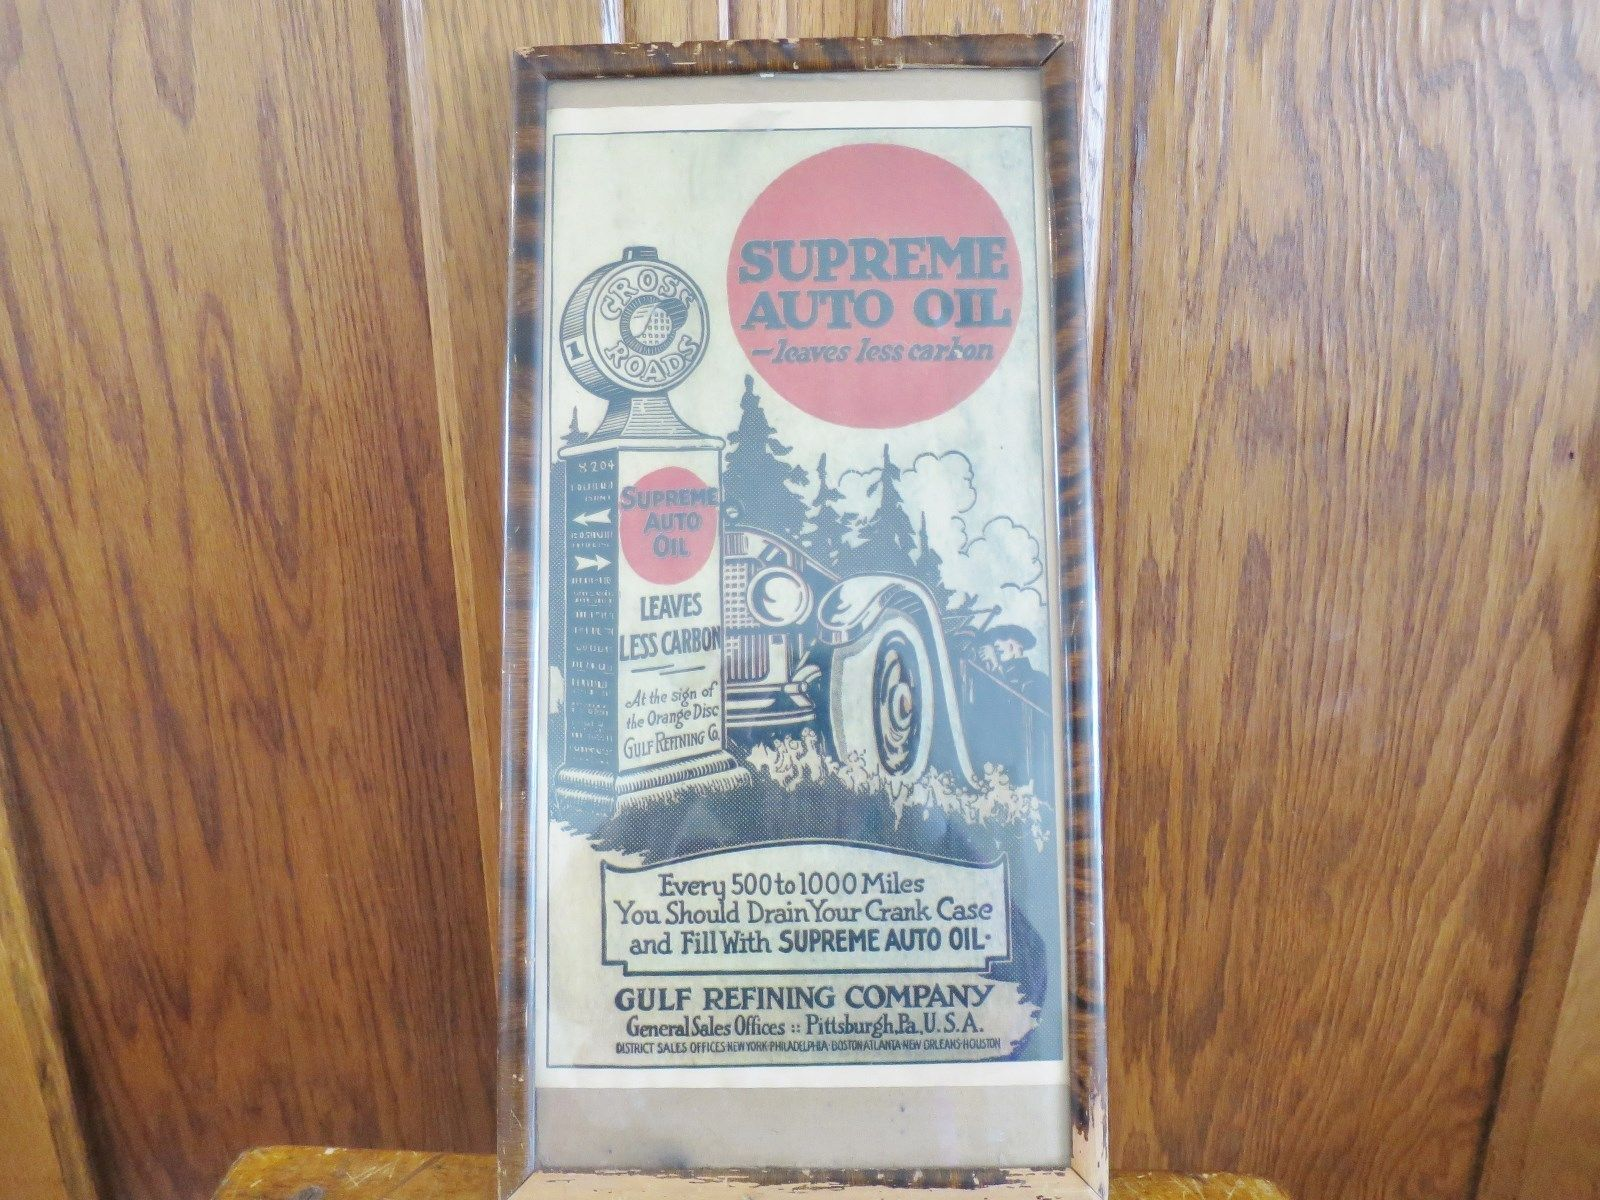 Primary image for Gulf Oil Supreme Auto Oil Advertisement Framed Vintage